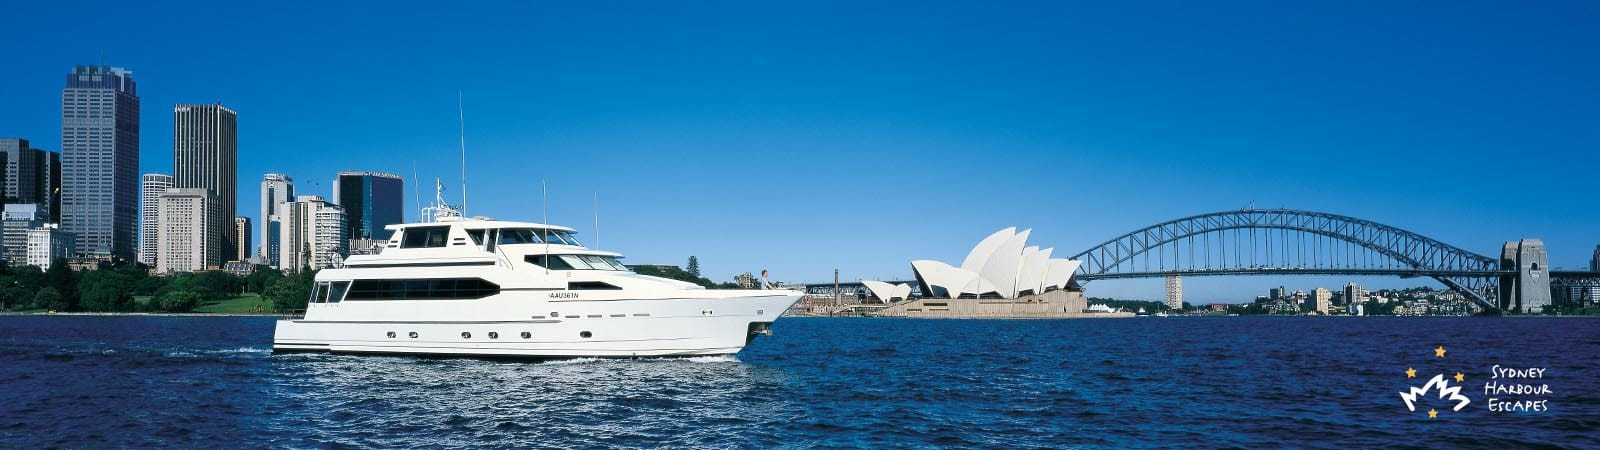 Corporate Event Boats Sydney